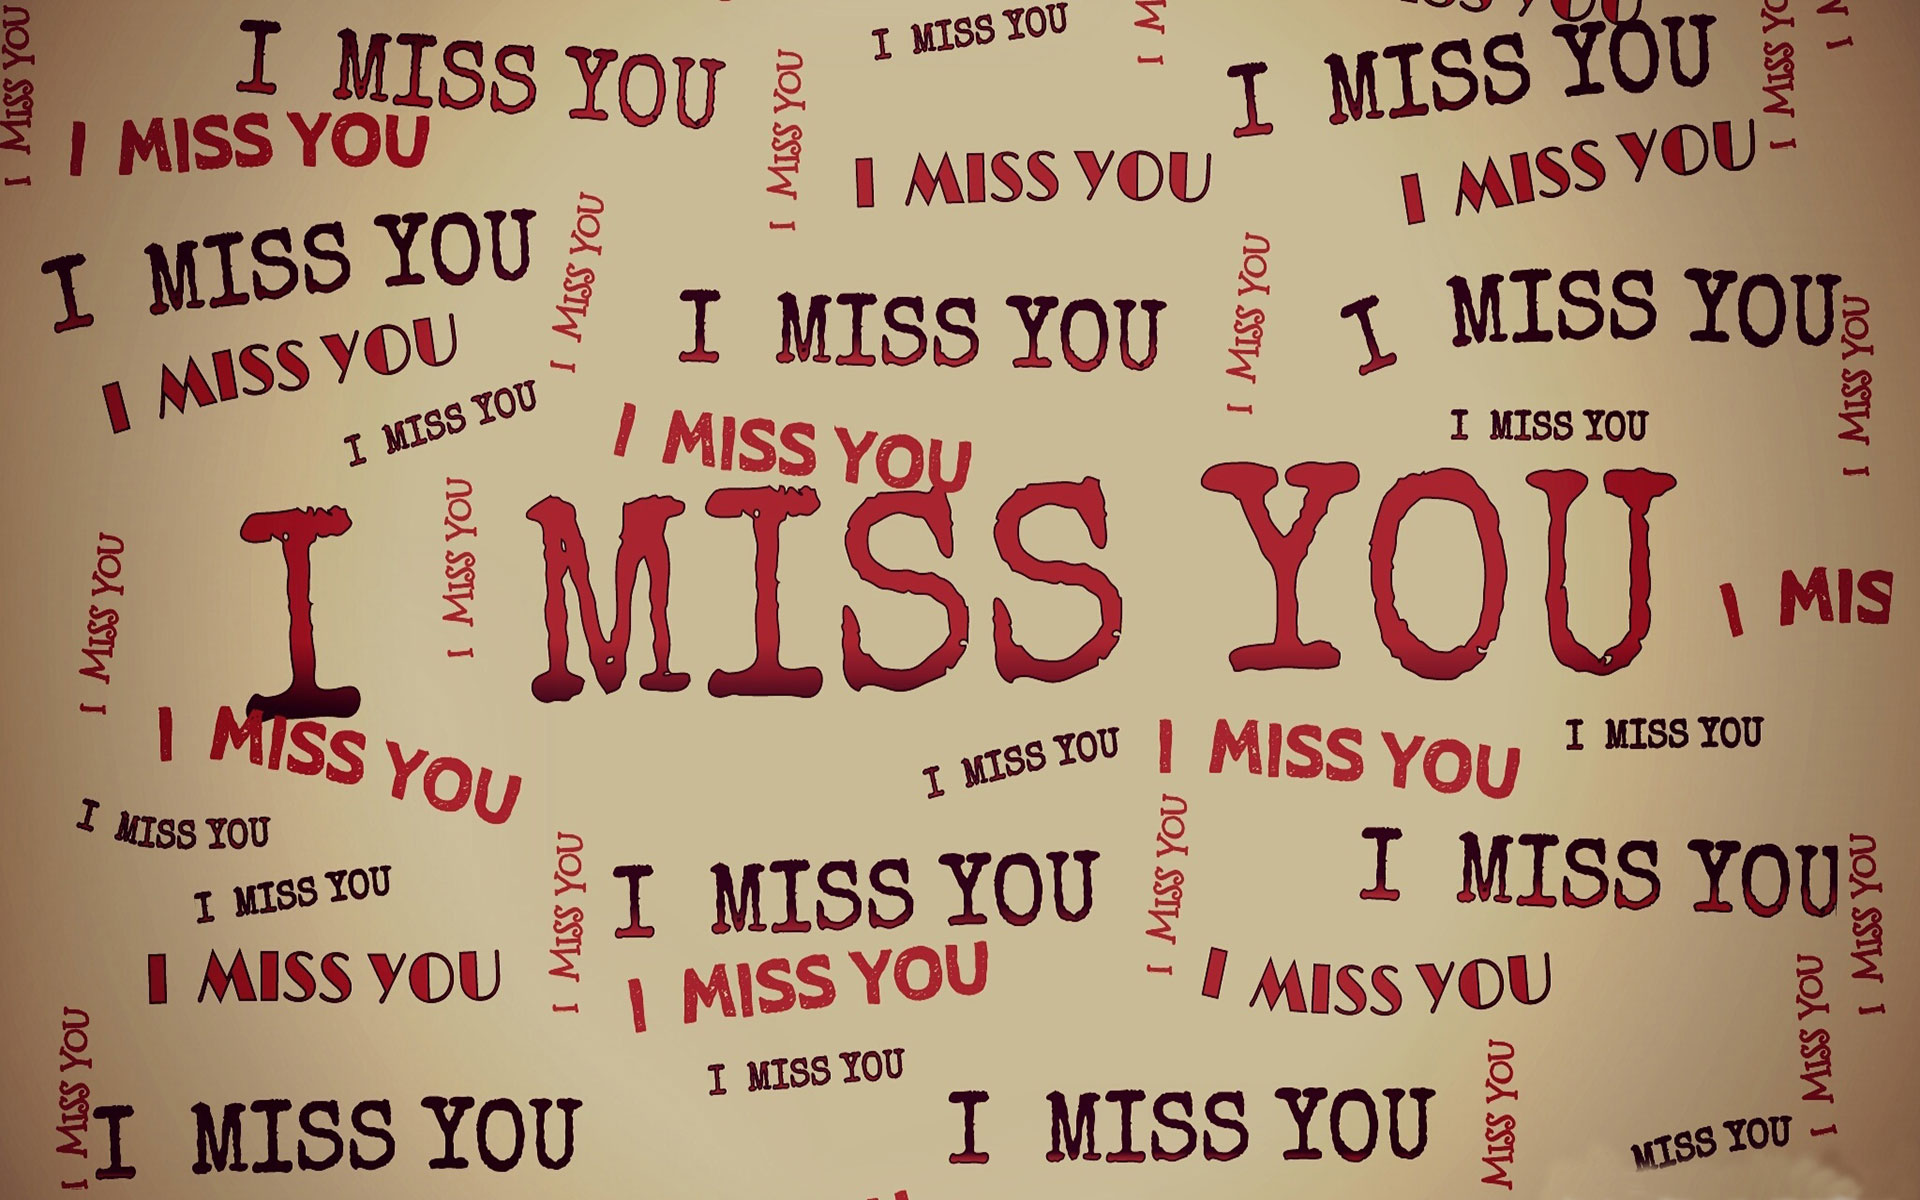 HD I Miss You Wallpaper for him or her-Romantic Wallpapers-Chobirdokan